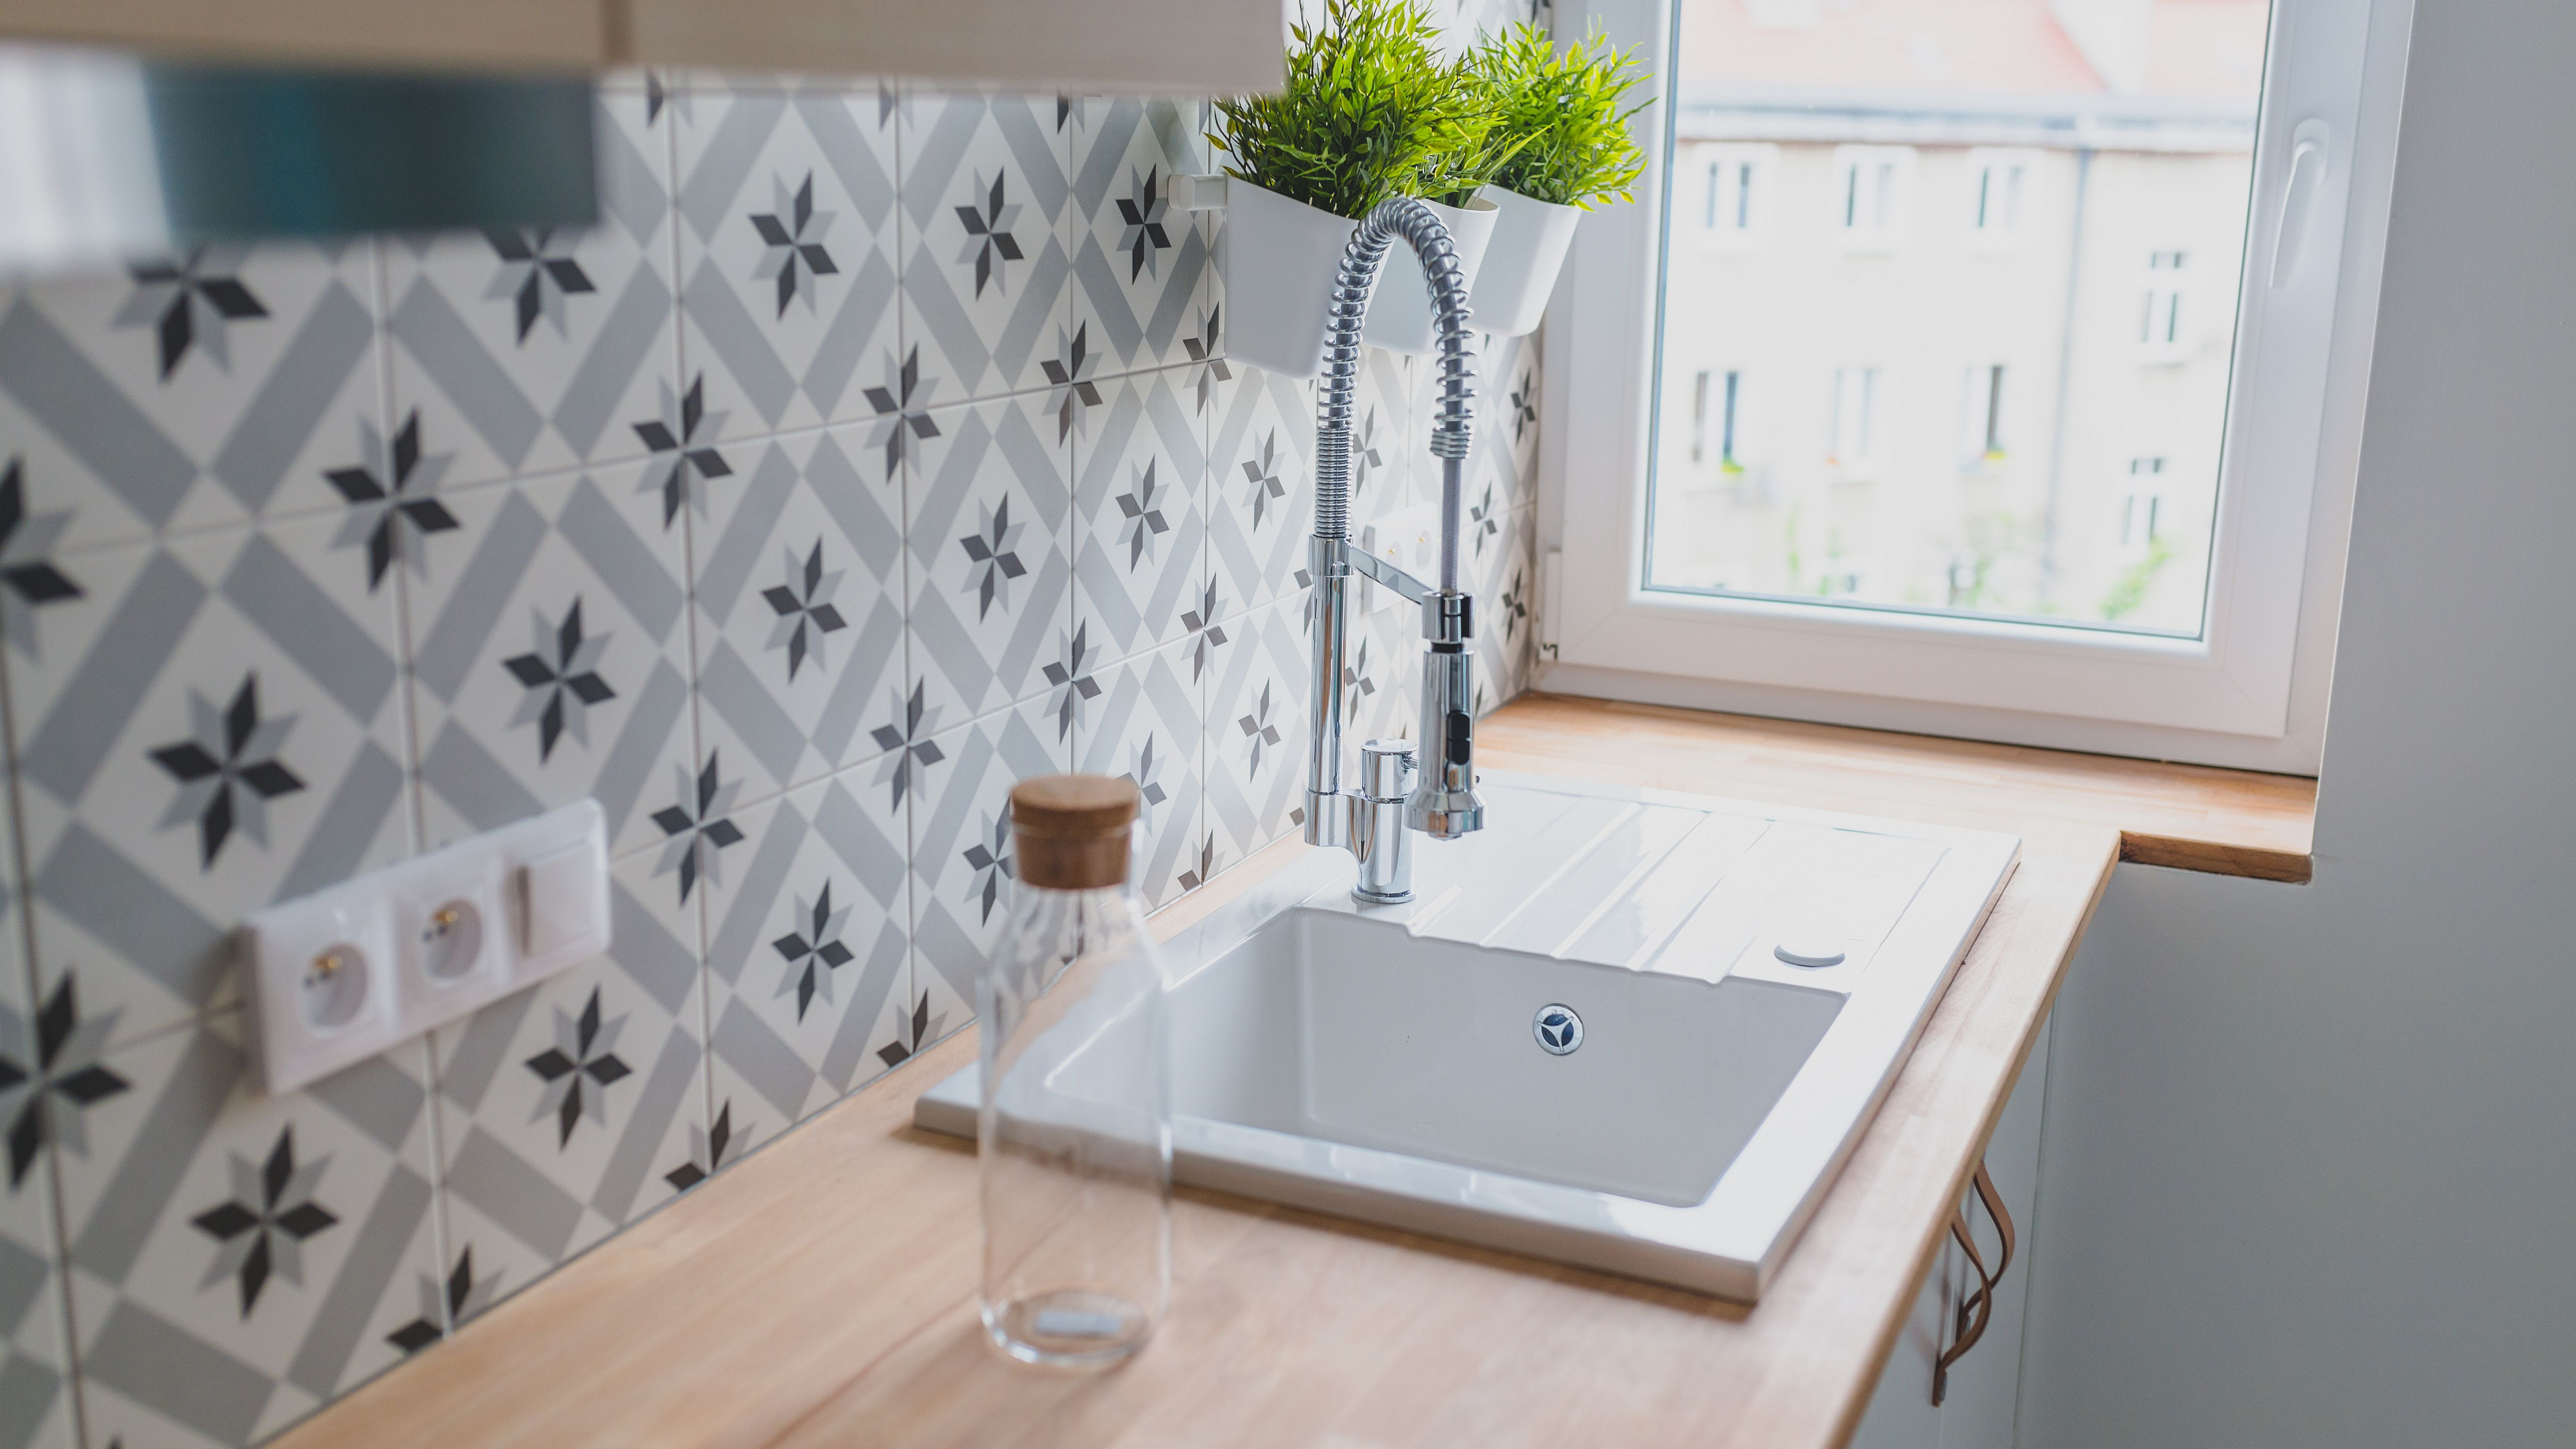 10 kitchen sink types pros and cons